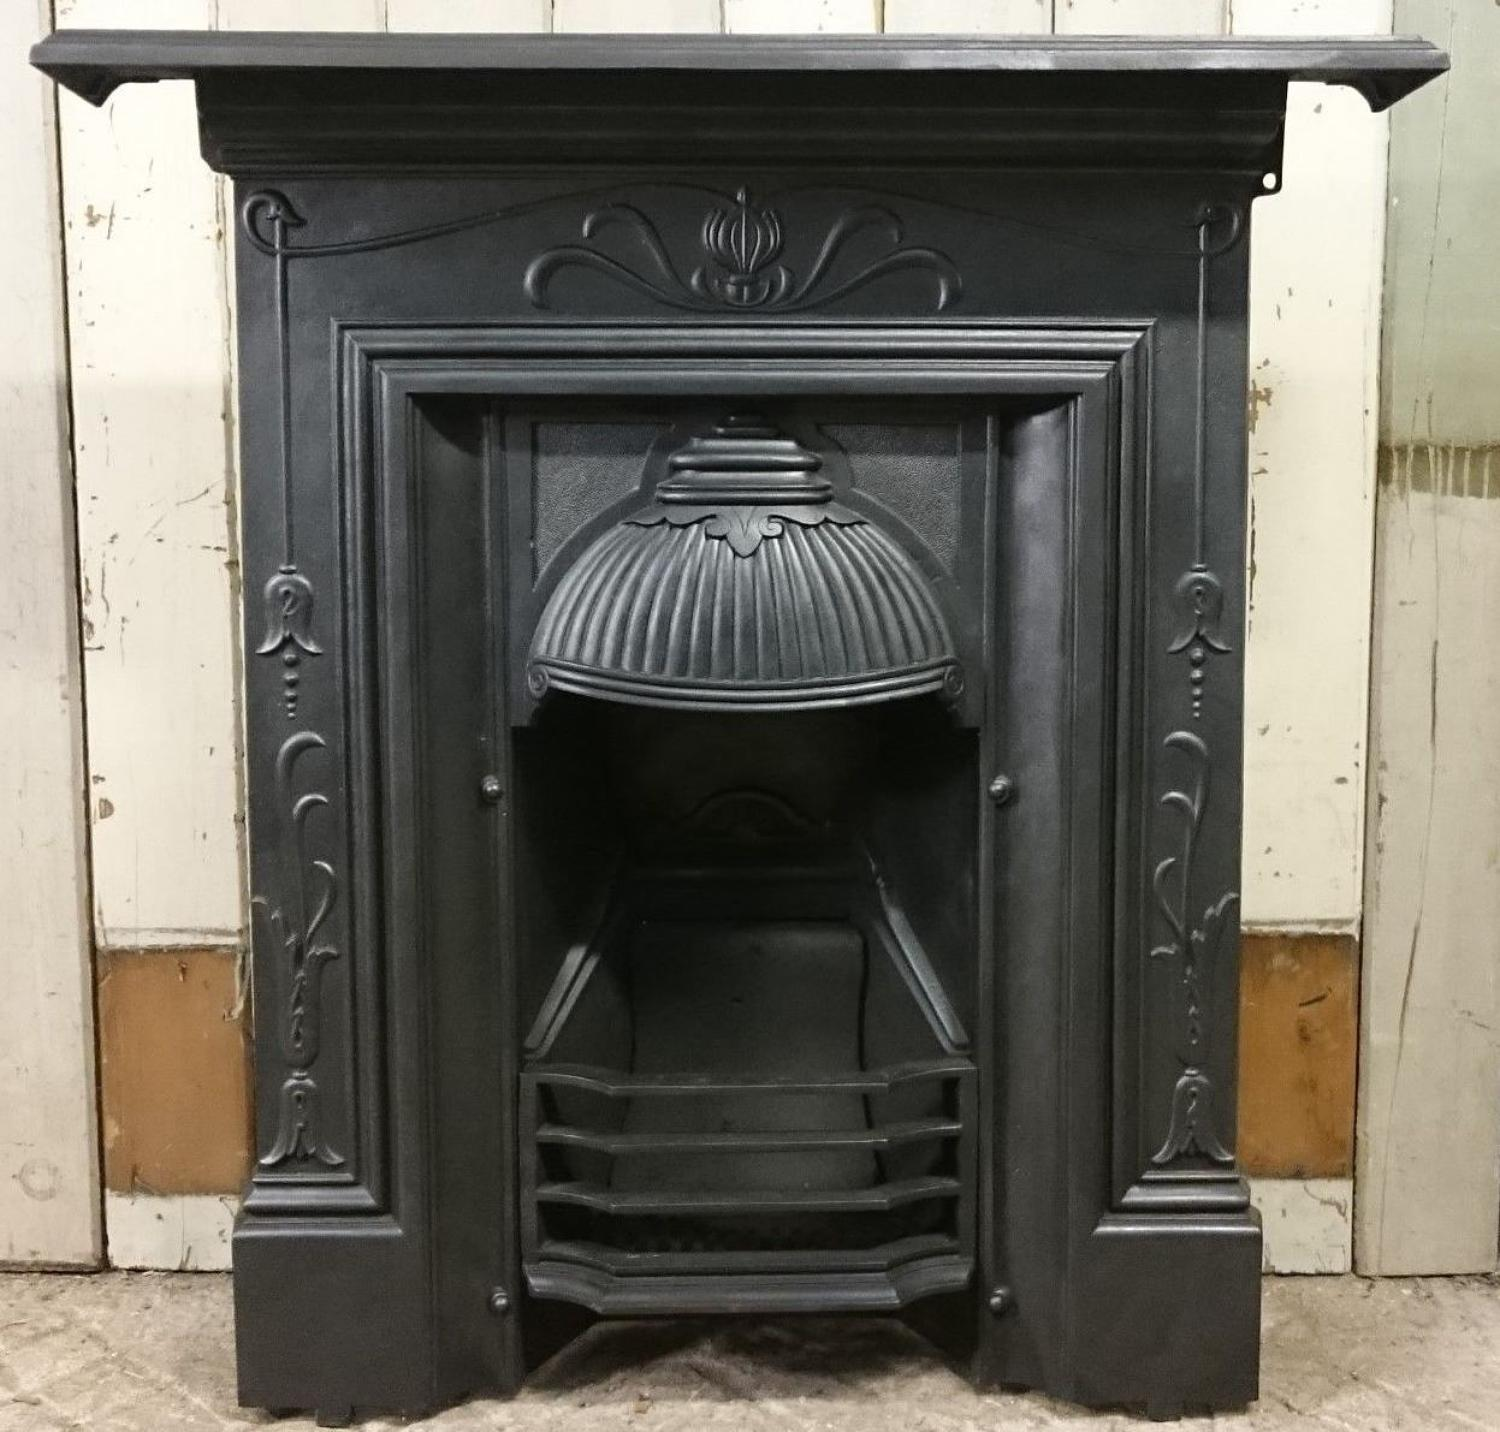 Attractive cast iron Art Nouveau combination fire for living/bedroom